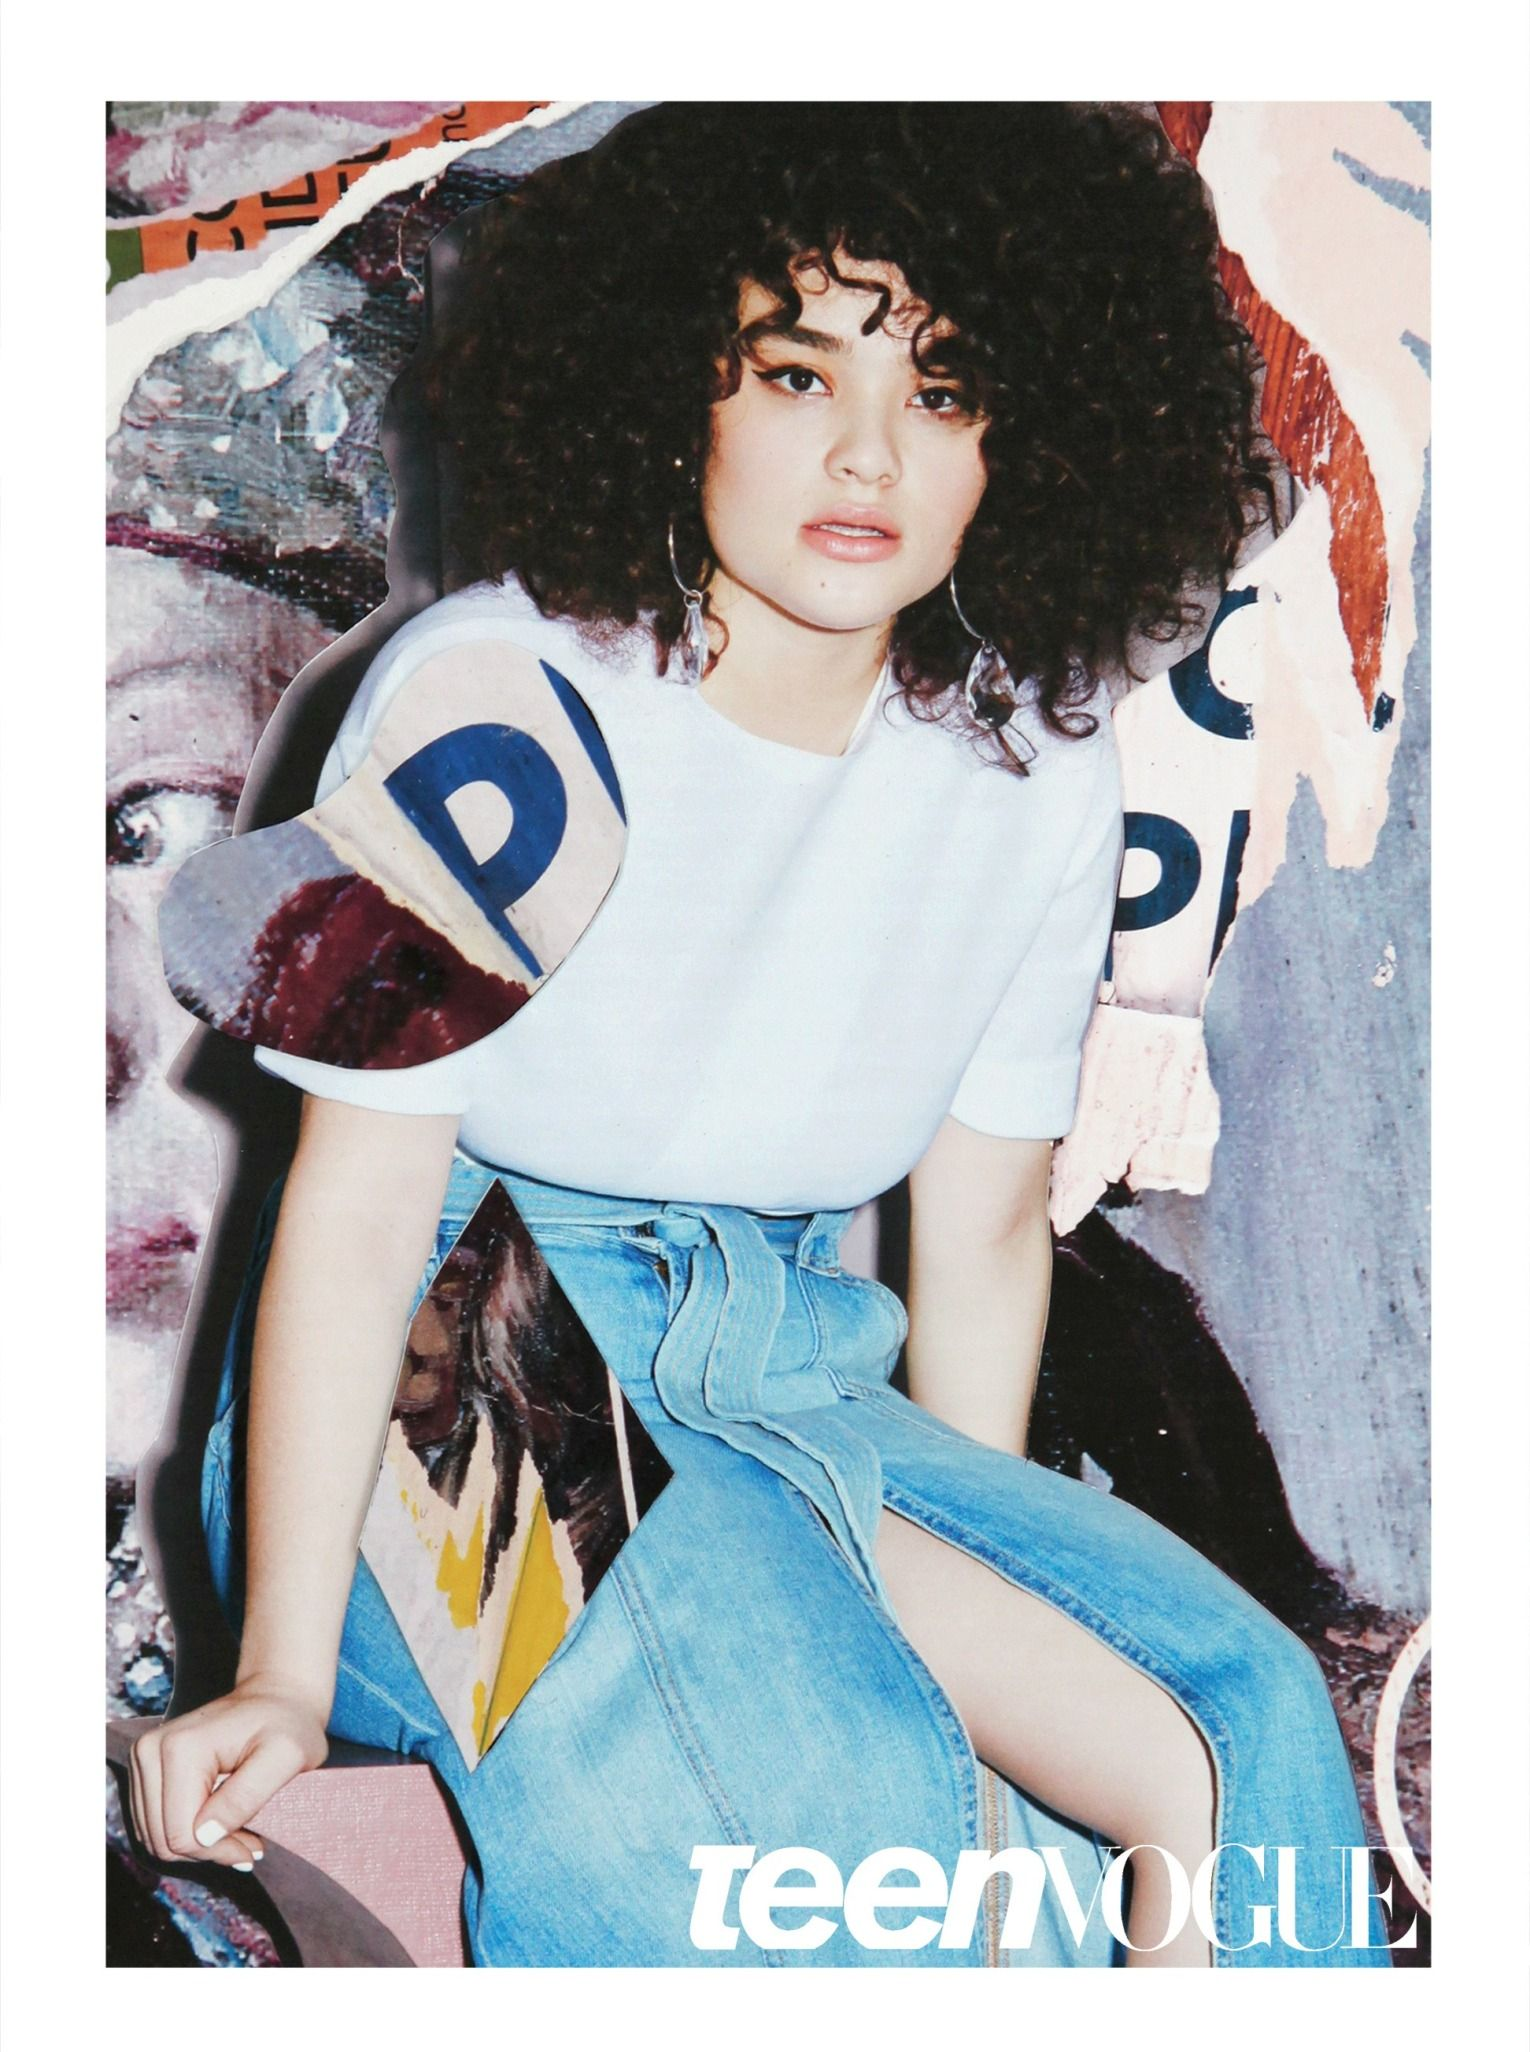 Incredible curls. That's the first thing you notice upon meeting Diana. Get to know the model in our August issue